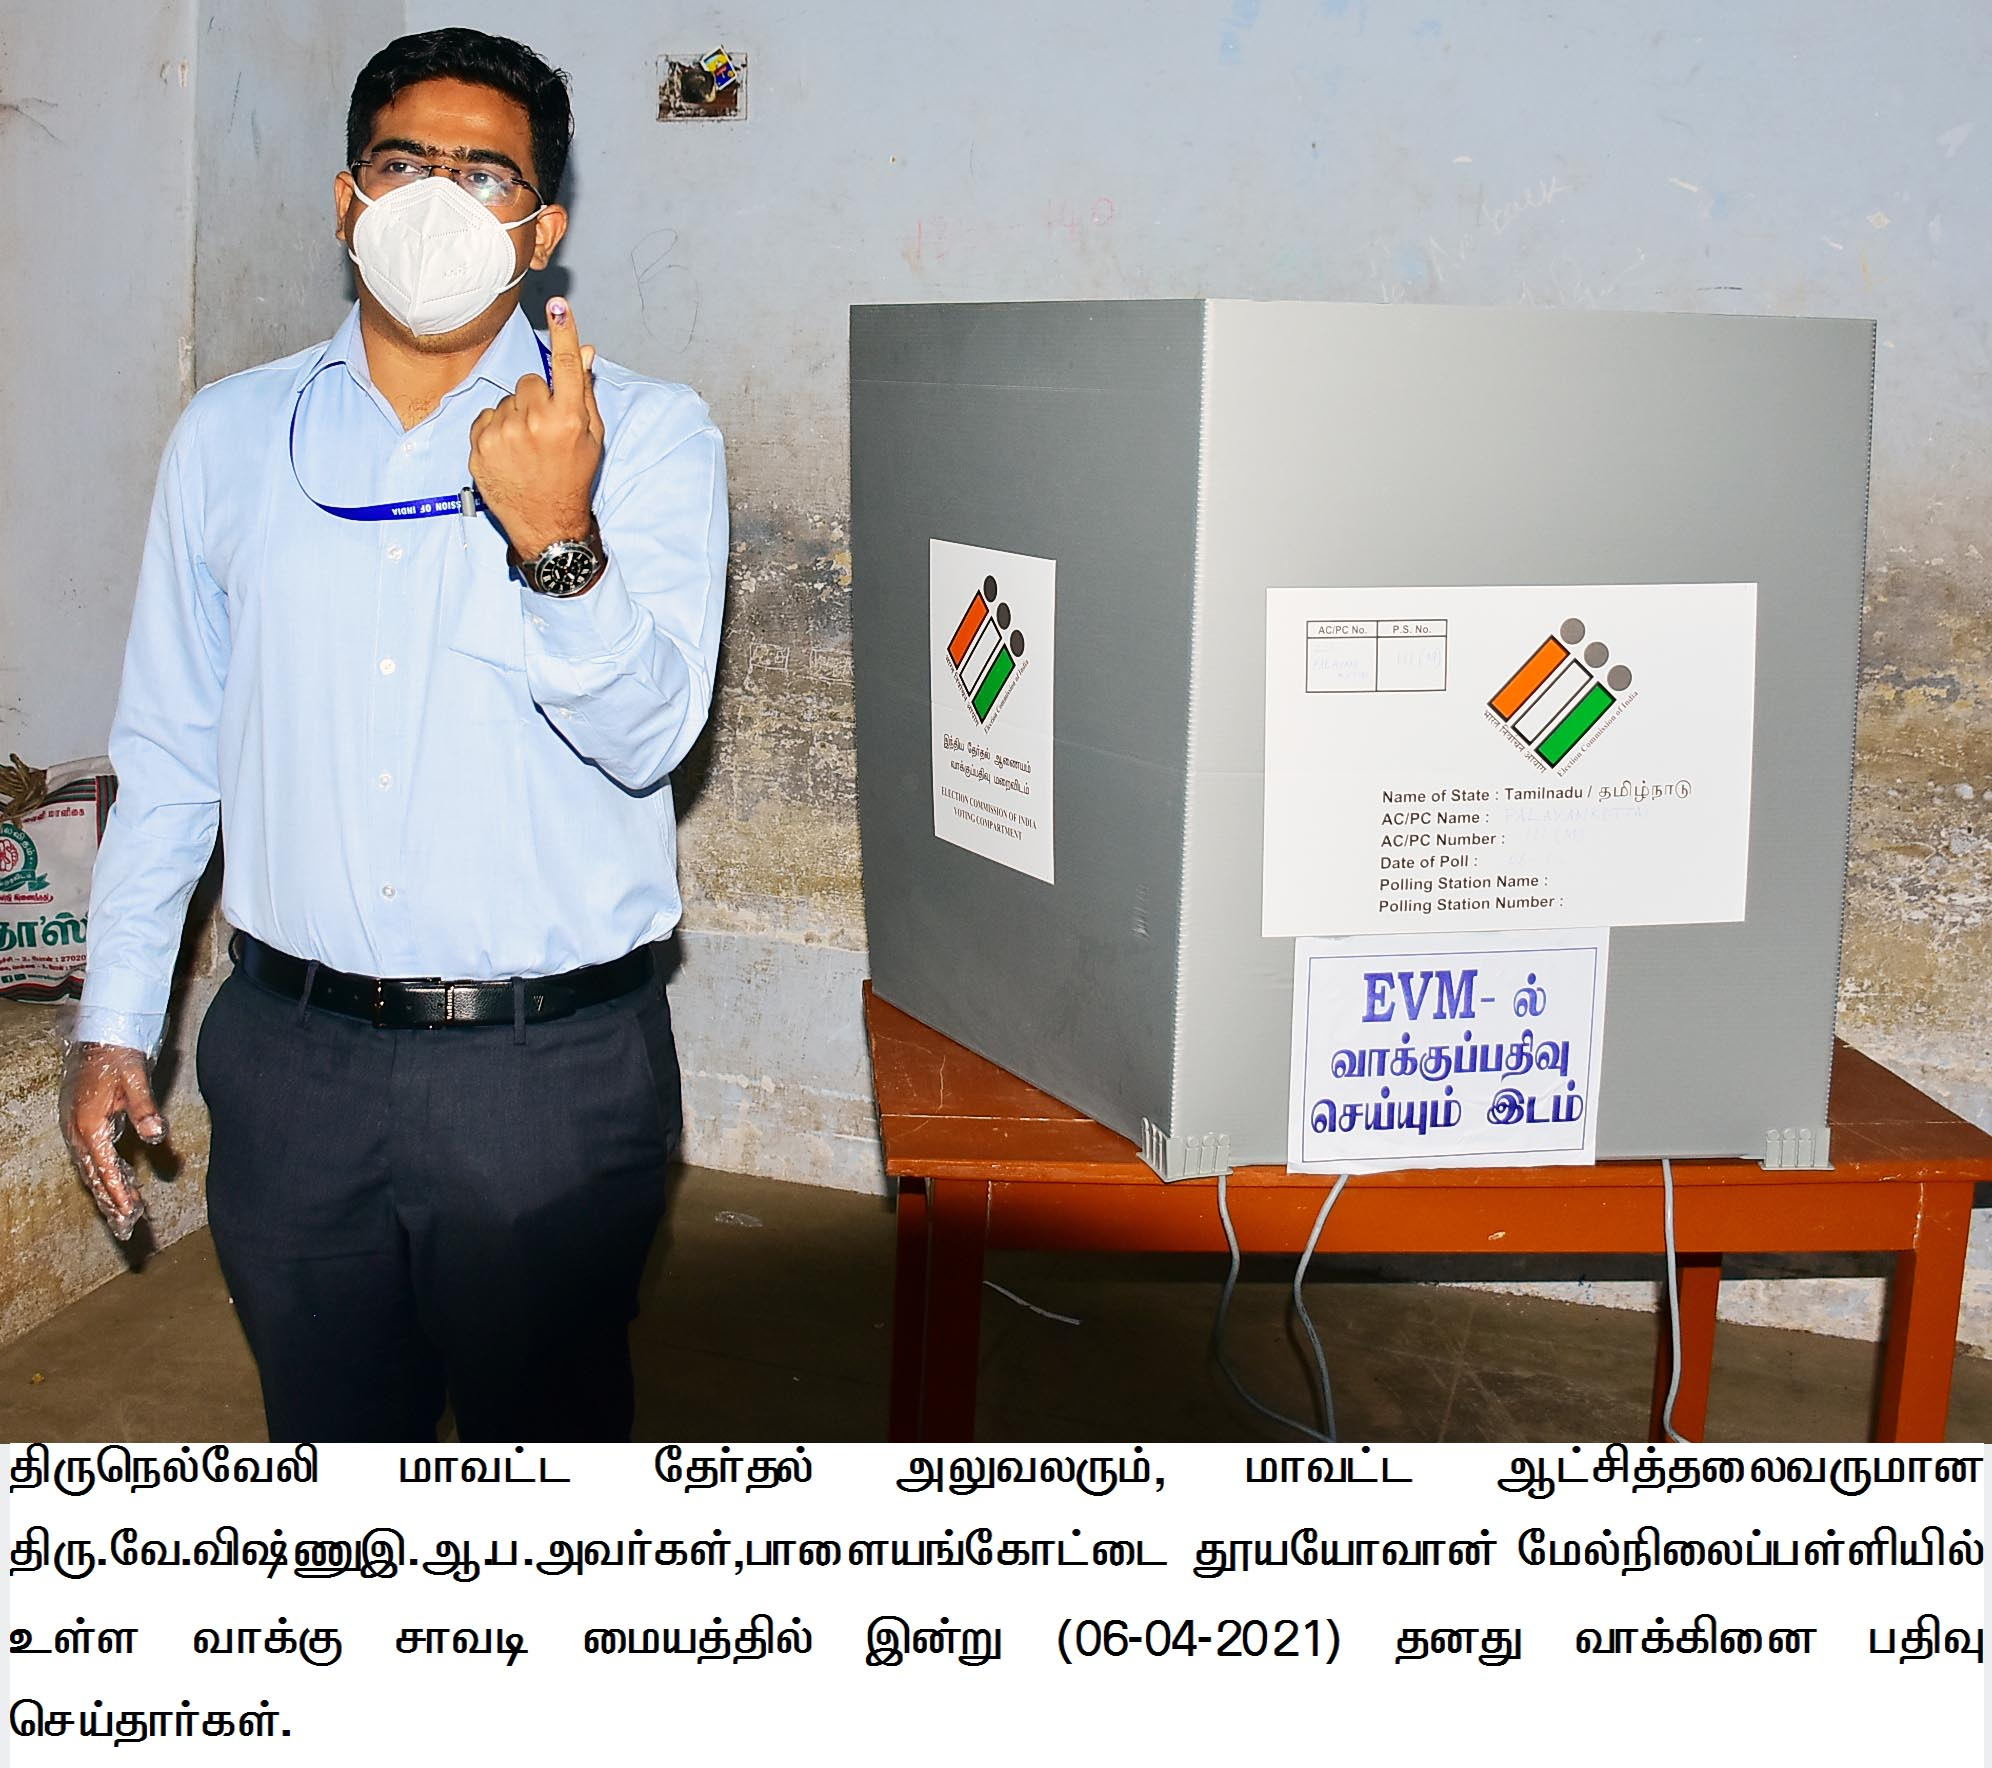 Voted news